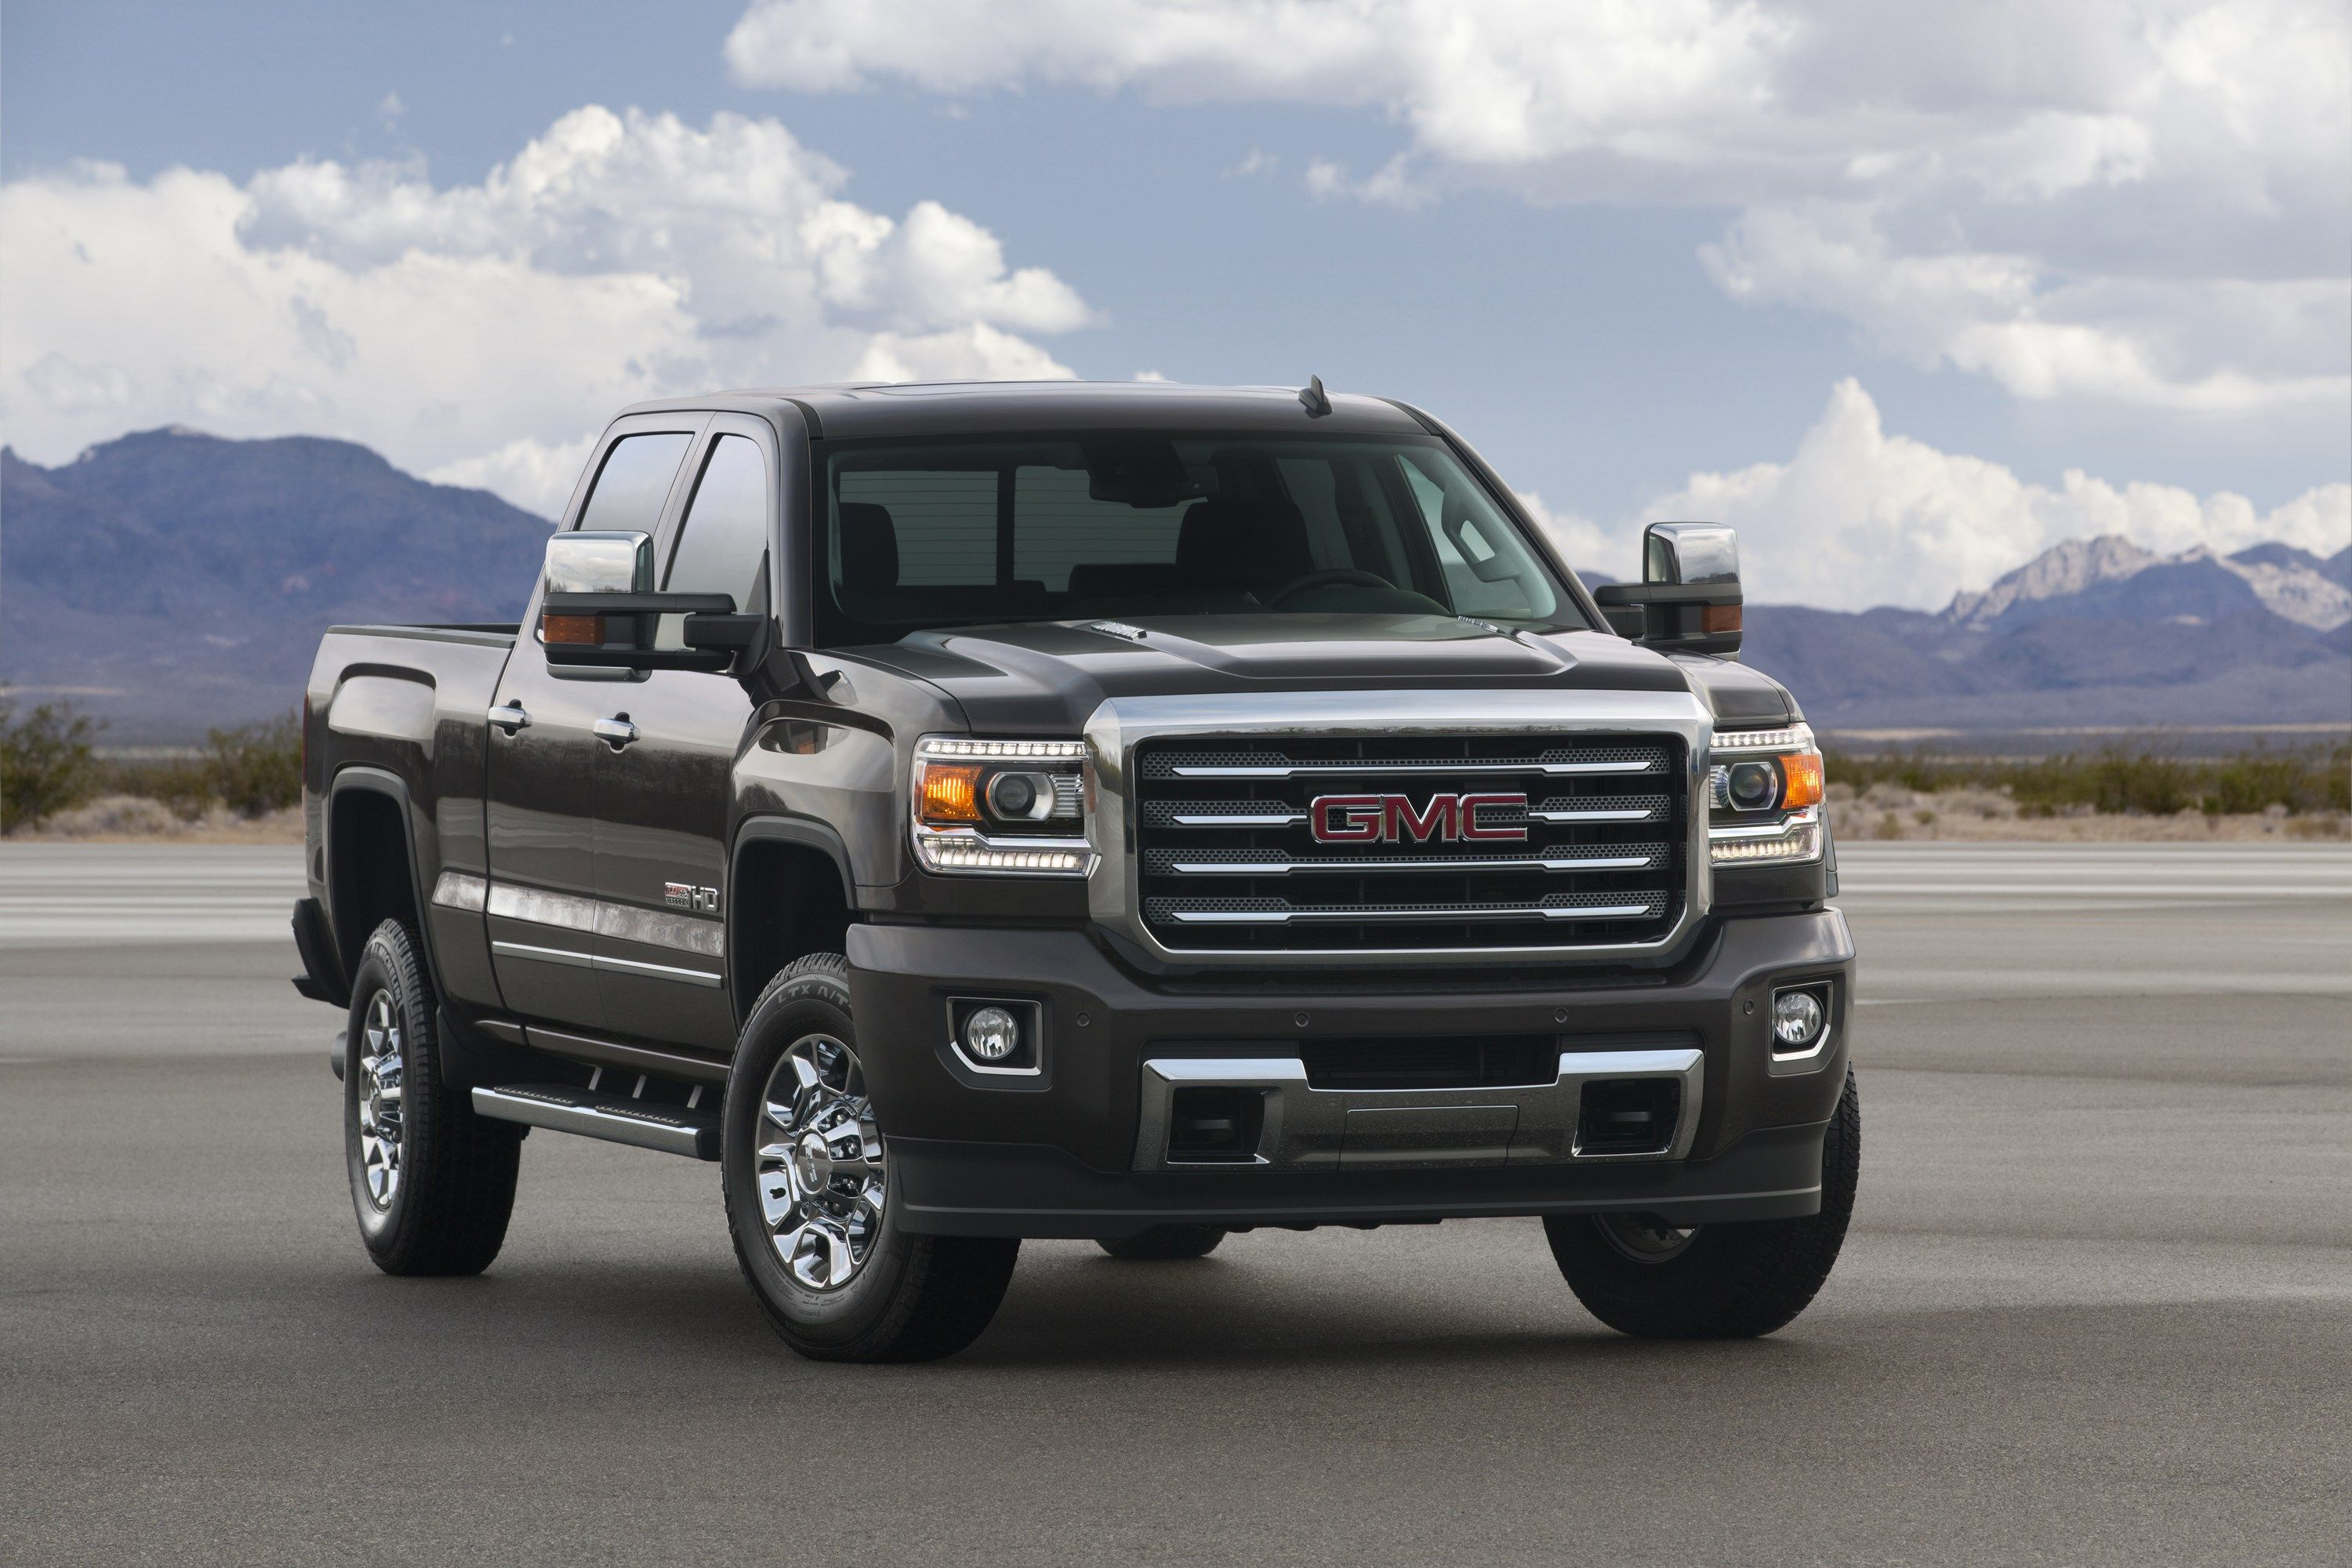 2020 Gmc Denali 3500hd Concept Engine Specs Updates And Price